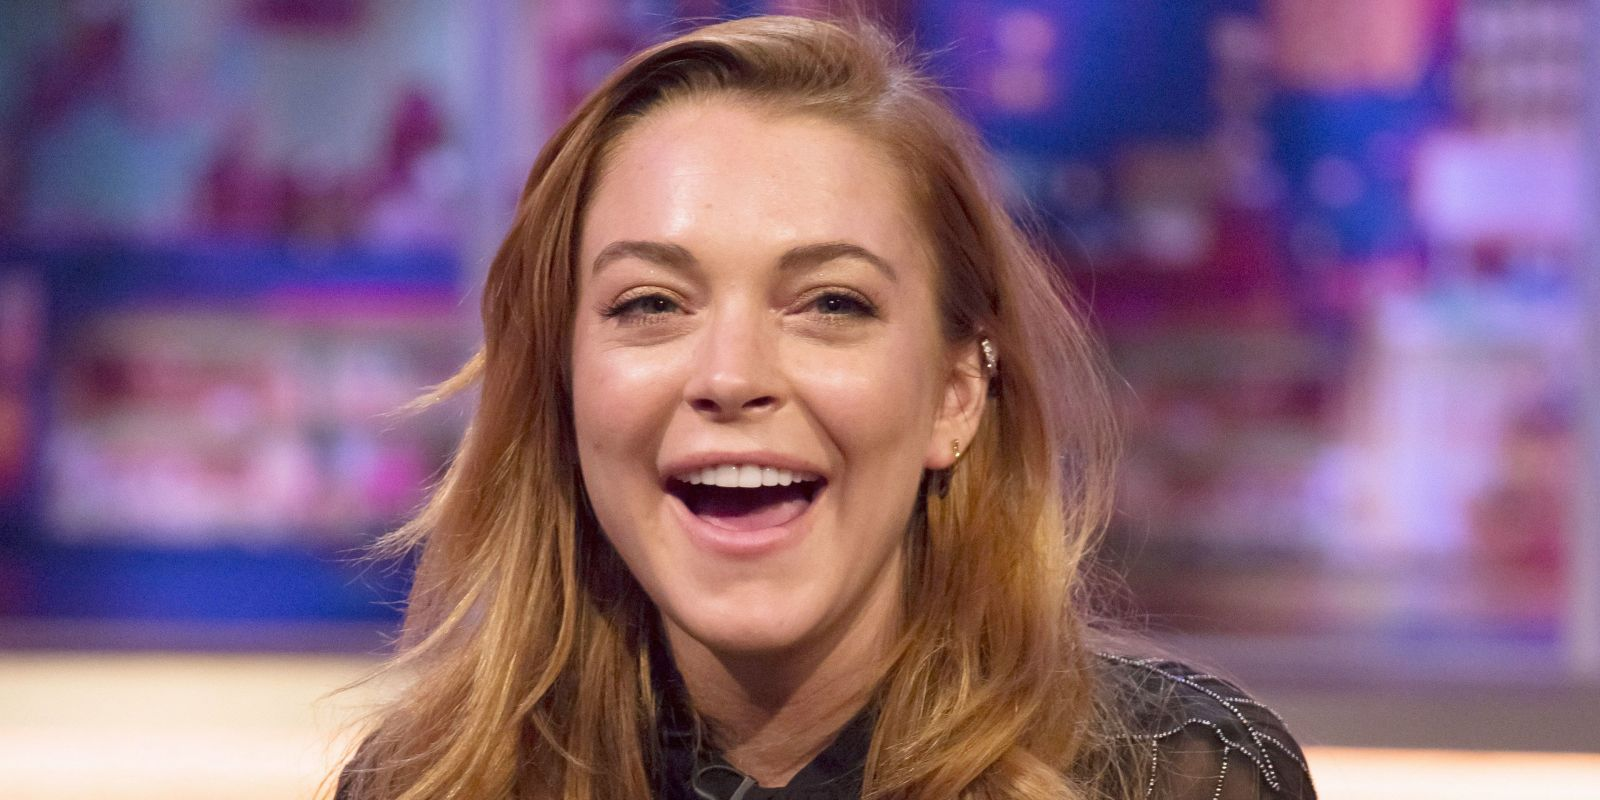 Lindsay Lohan Really Wants To Play Ariel In The Little Mermaid